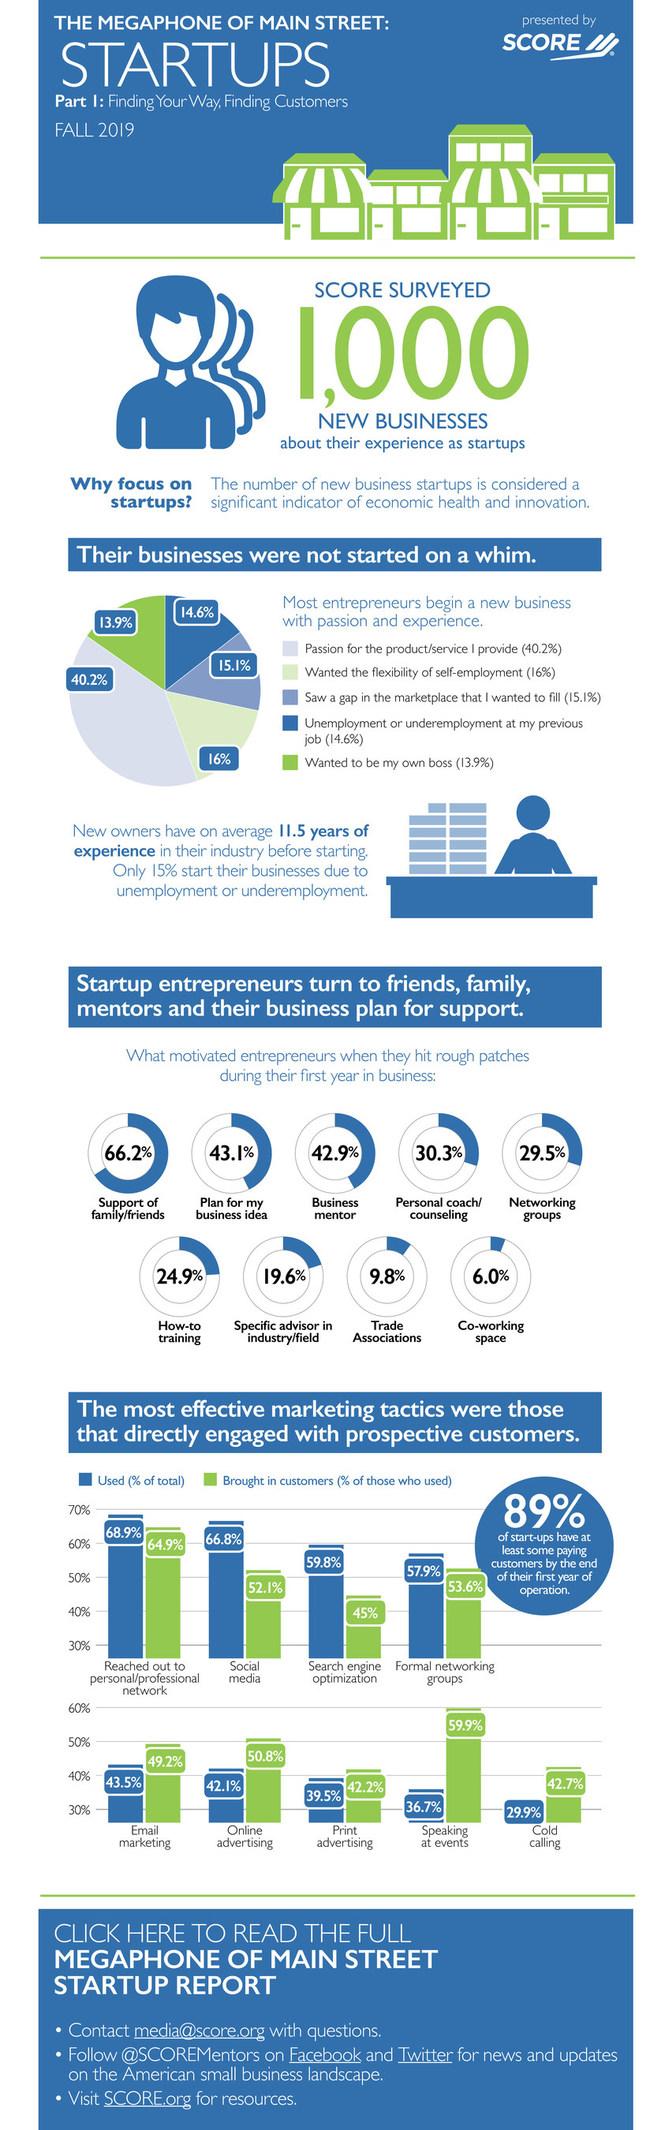 SCORE, the nation's largest network of volunteer, expert business mentors, has published original survey data on the unique challenges that U.S. small business startups face in their critical first year. Research shows that new entrepreneurs are most likely to launch their businesses based on a passion for their product or service, or a desire to be their own boss, and they have significant experience (11.5 years, on average) in their respective industries.